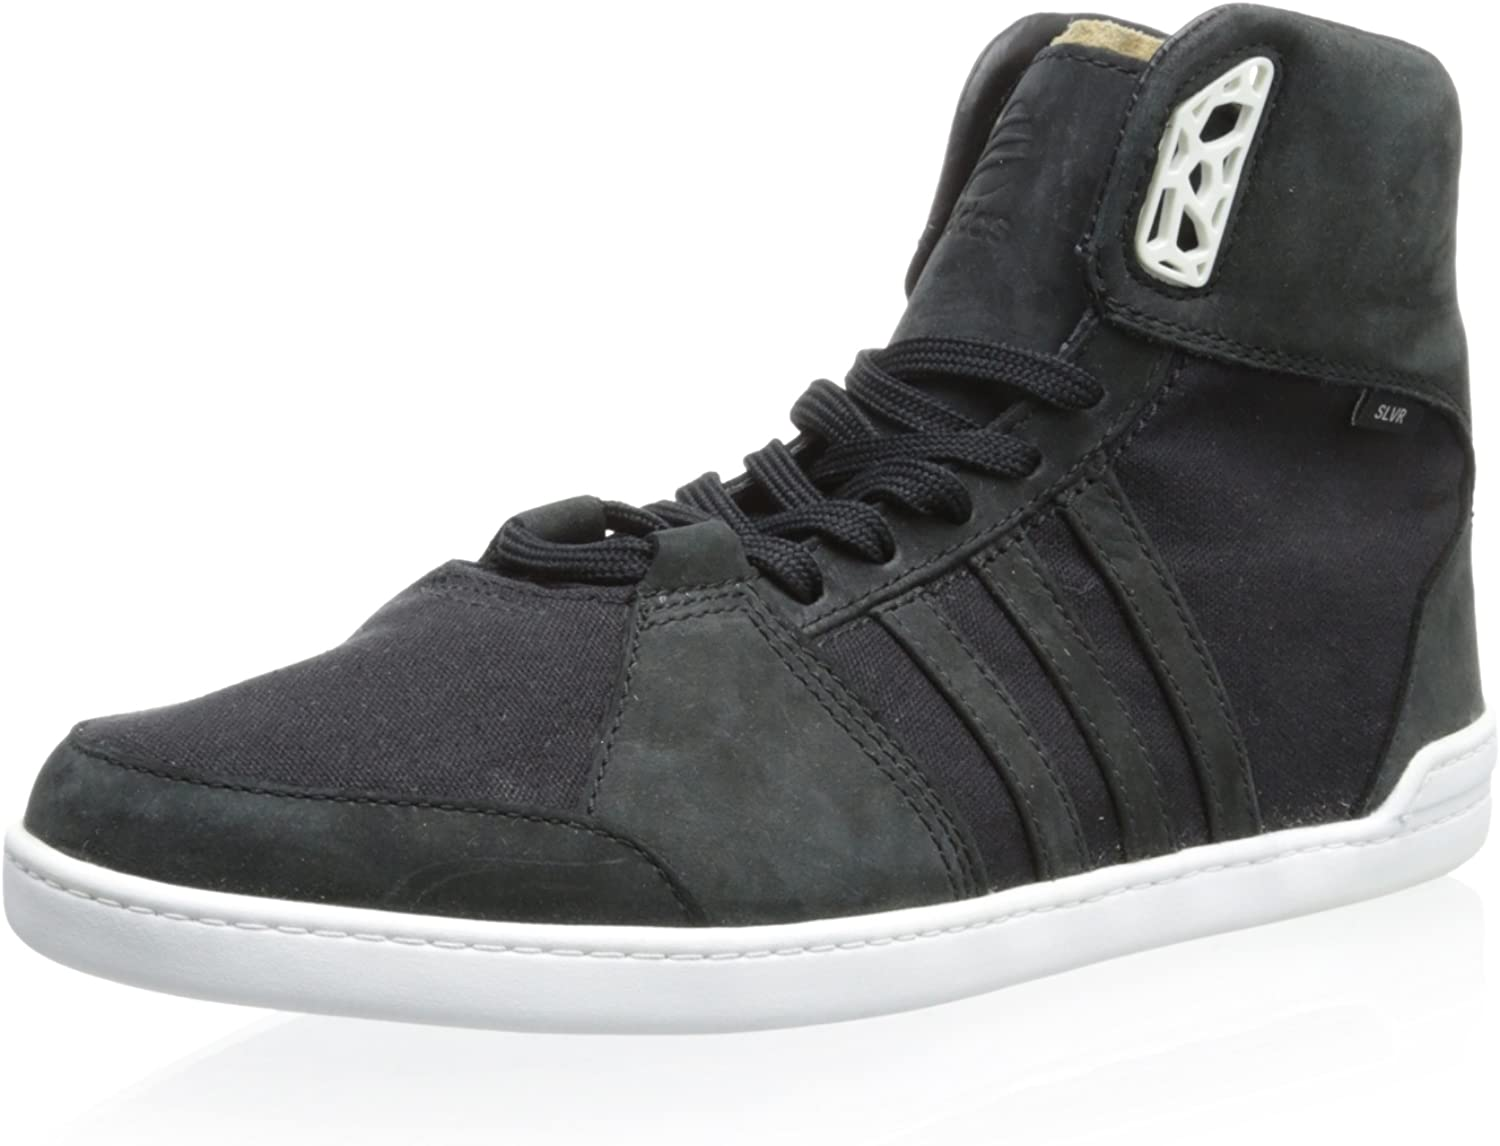 Adidas Hoops Mid Trainers Men's shoes US 12 Black